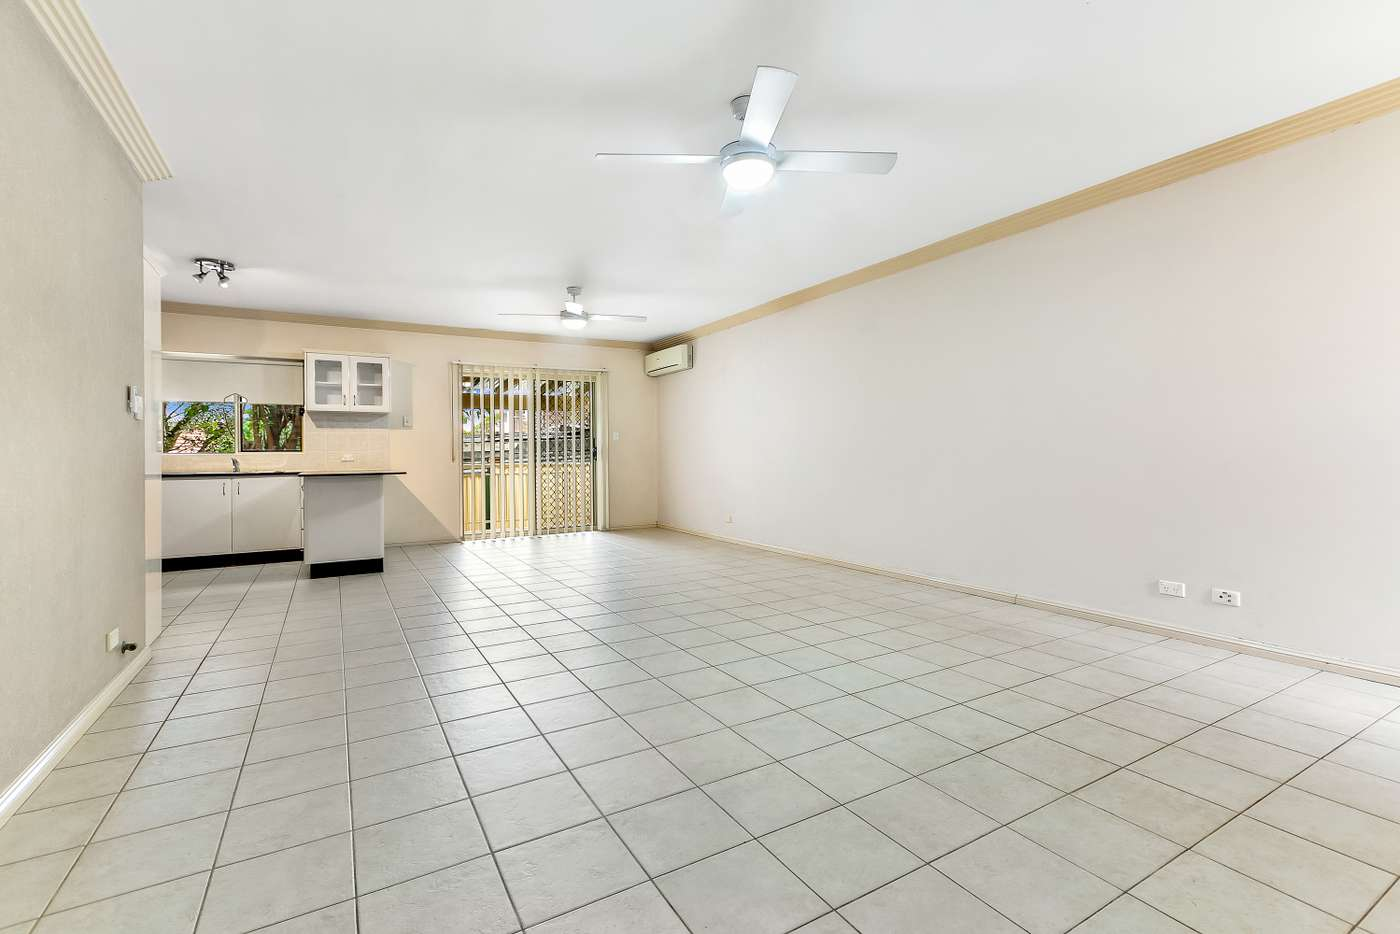 Main view of Homely house listing, 5/19 Caledonian Street, Bexley NSW 2207